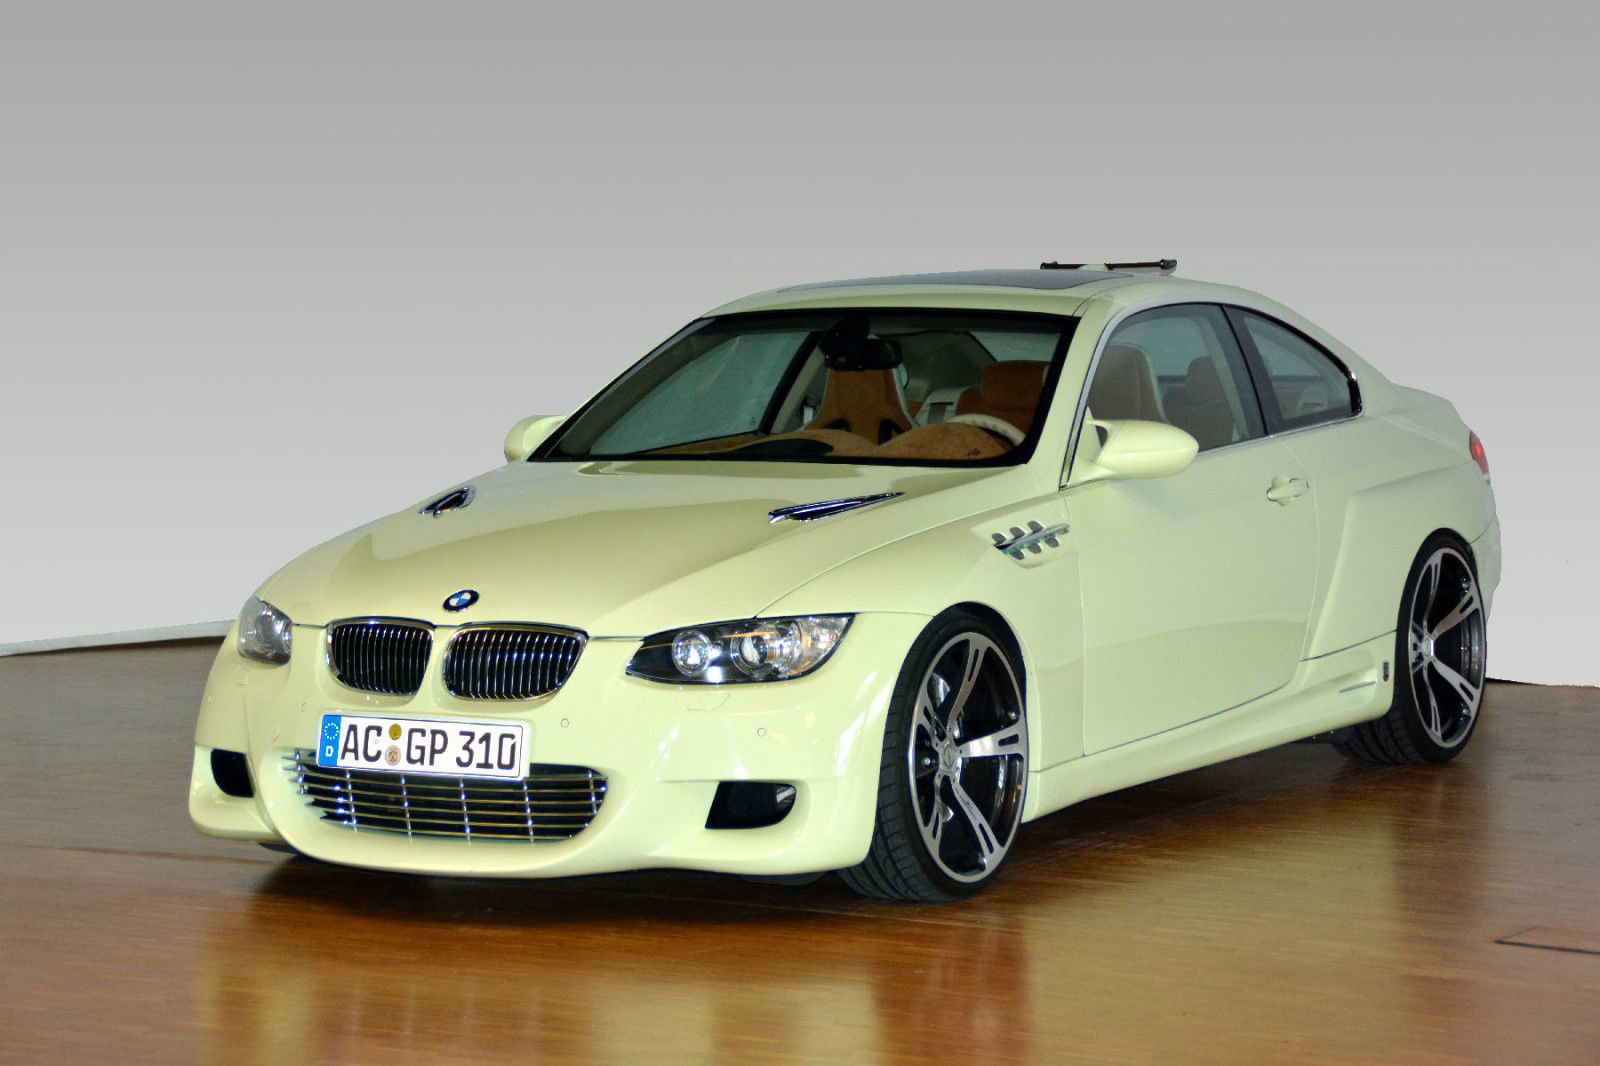 ac schnitzer gp based on bmw e92 335i on sale. Black Bedroom Furniture Sets. Home Design Ideas